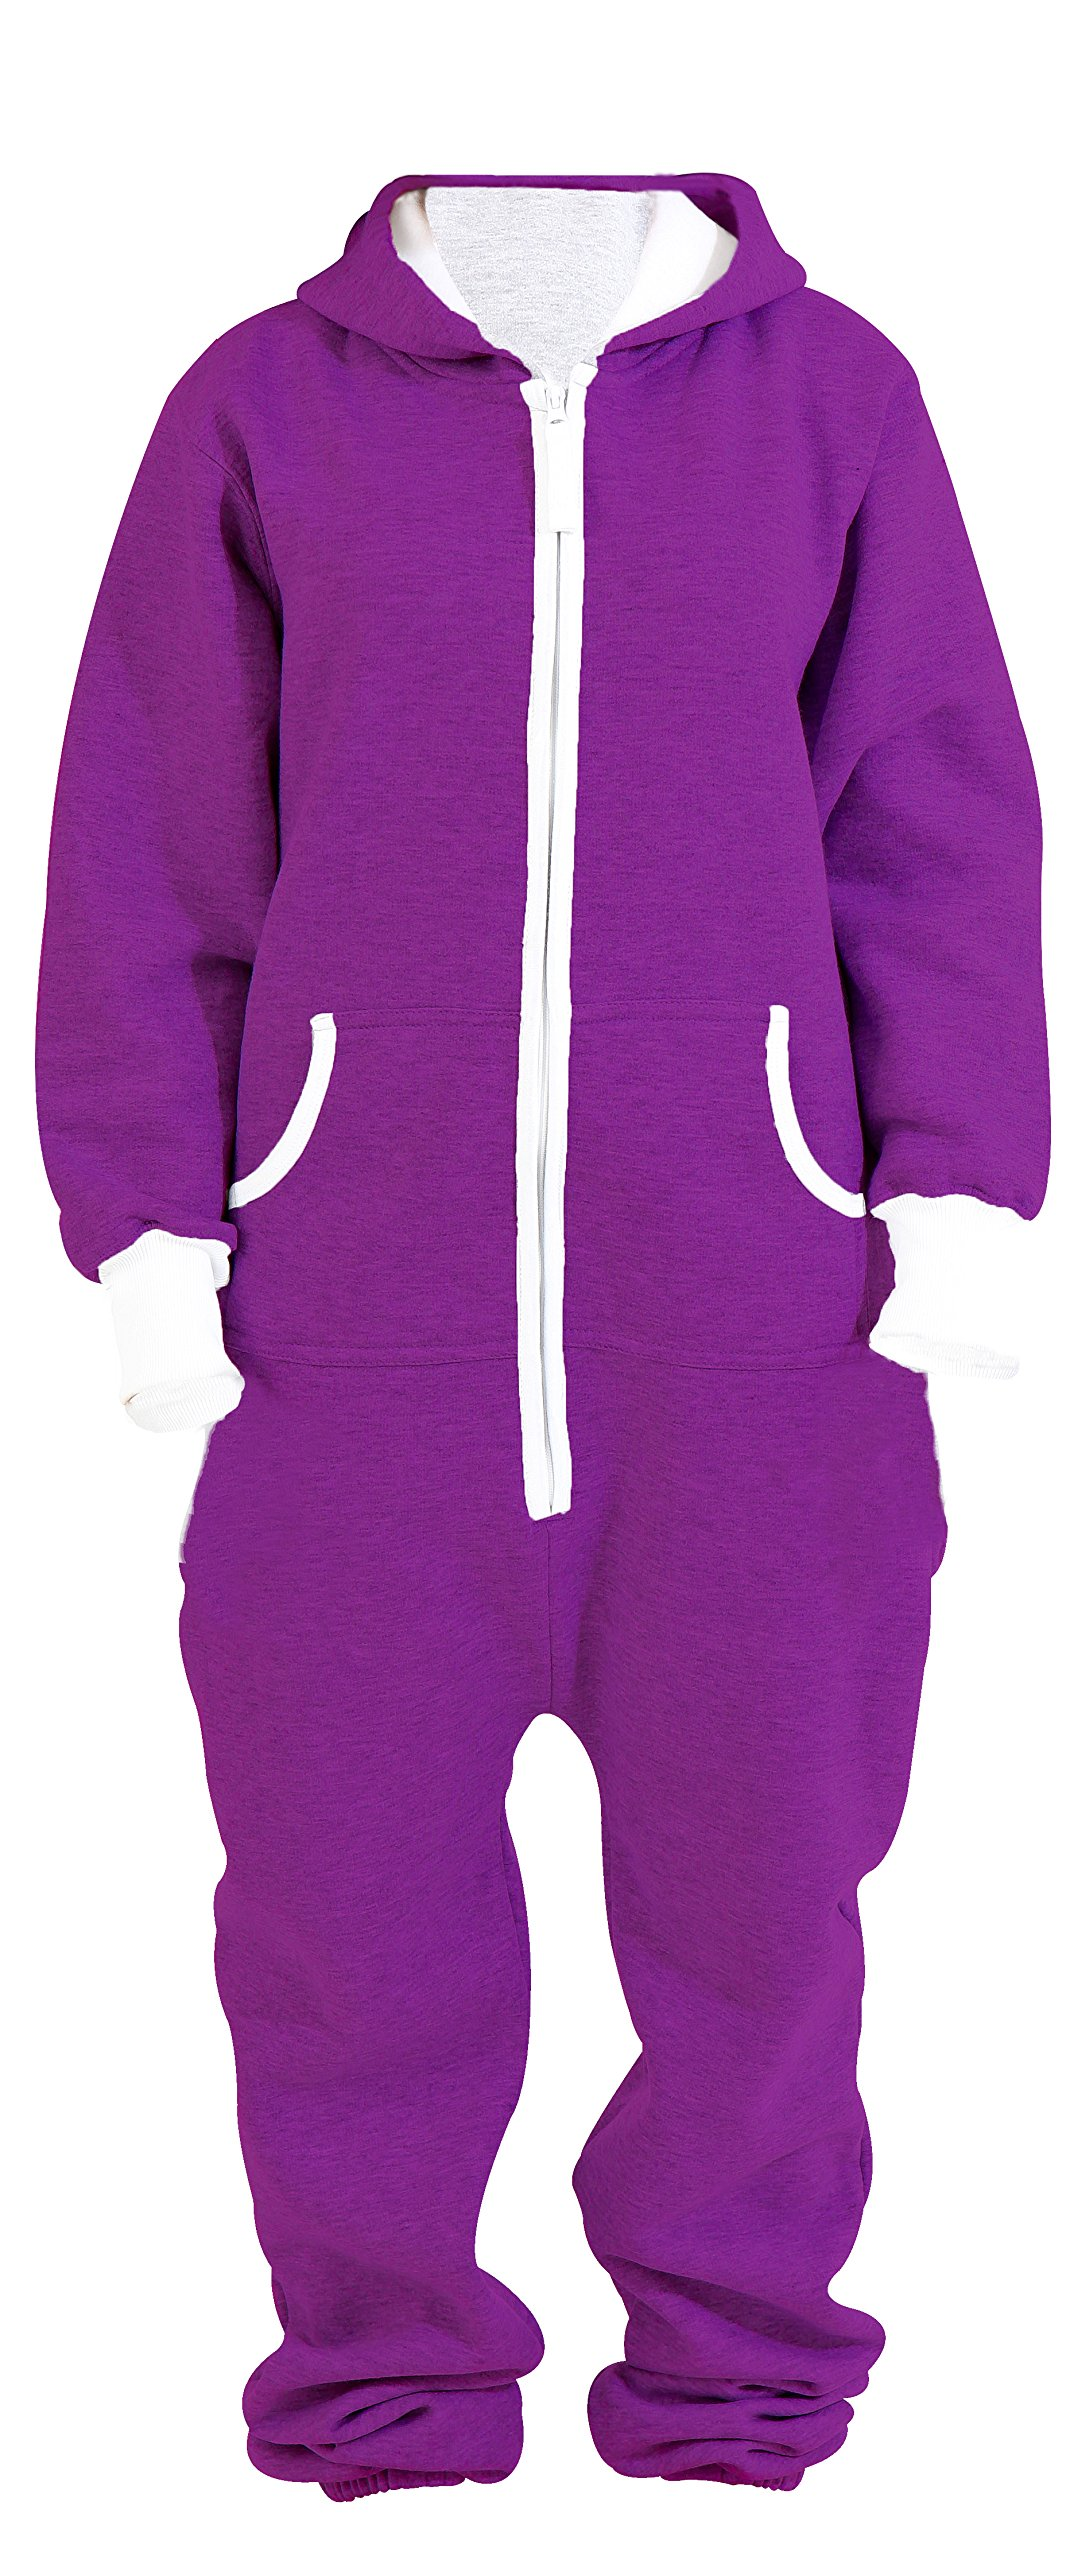 Purple Fashion Loungewear Onesie for Women